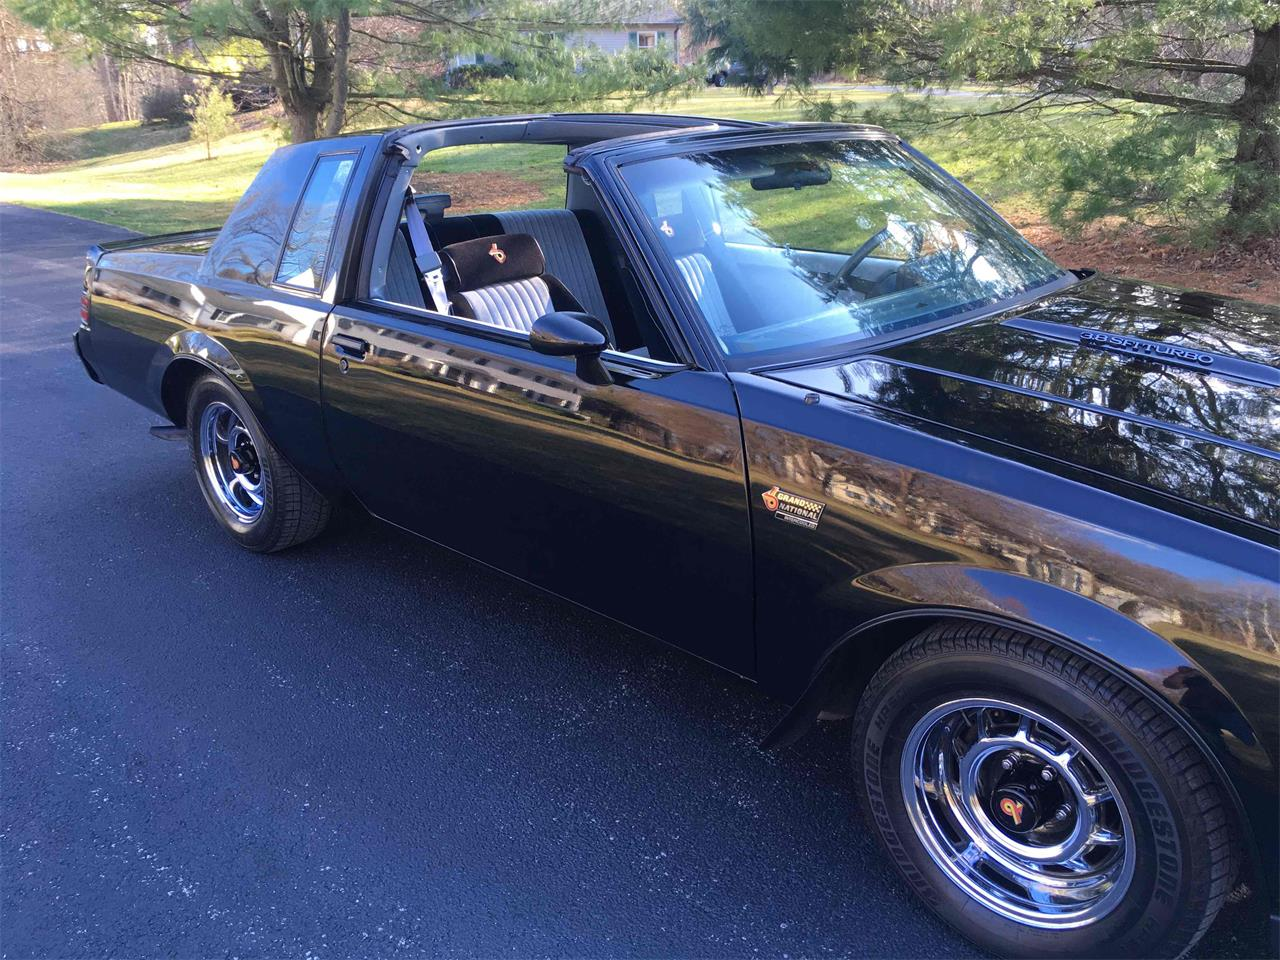 1987 Buick Grand National (CC-1233674) for sale in Poughkeepsie, New York